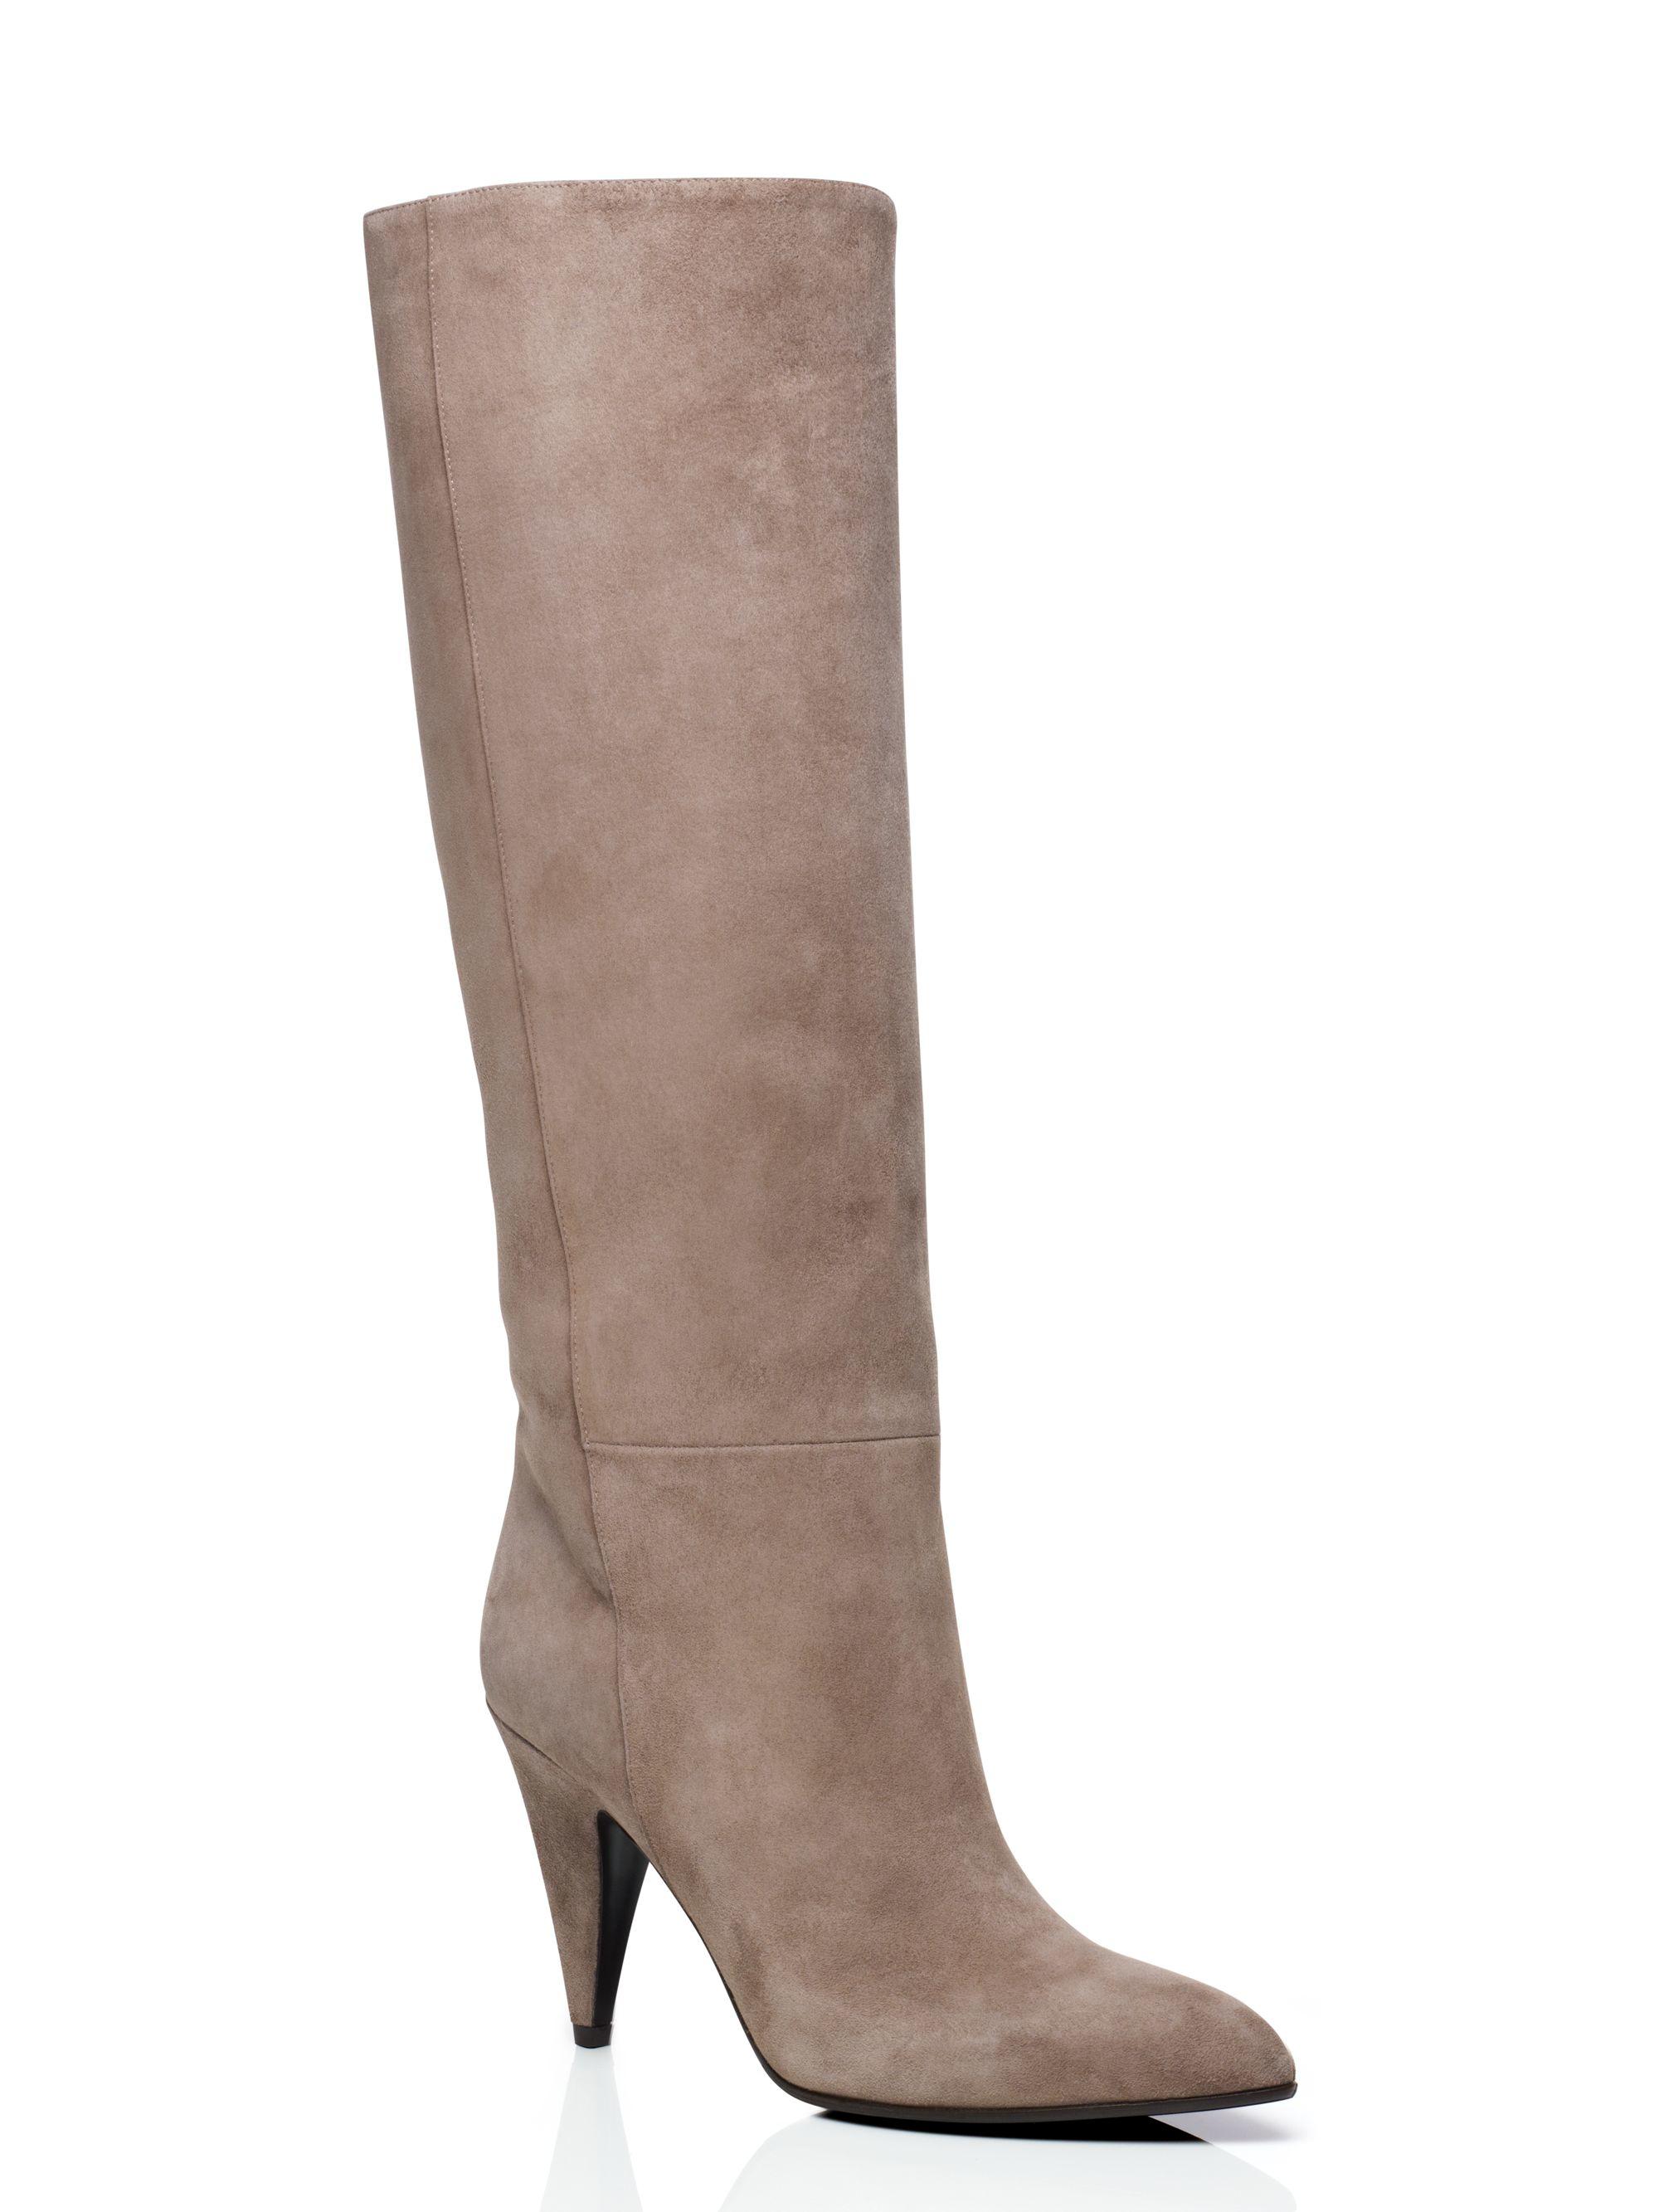 Kate spade new york Nessa Too Boots in Natural